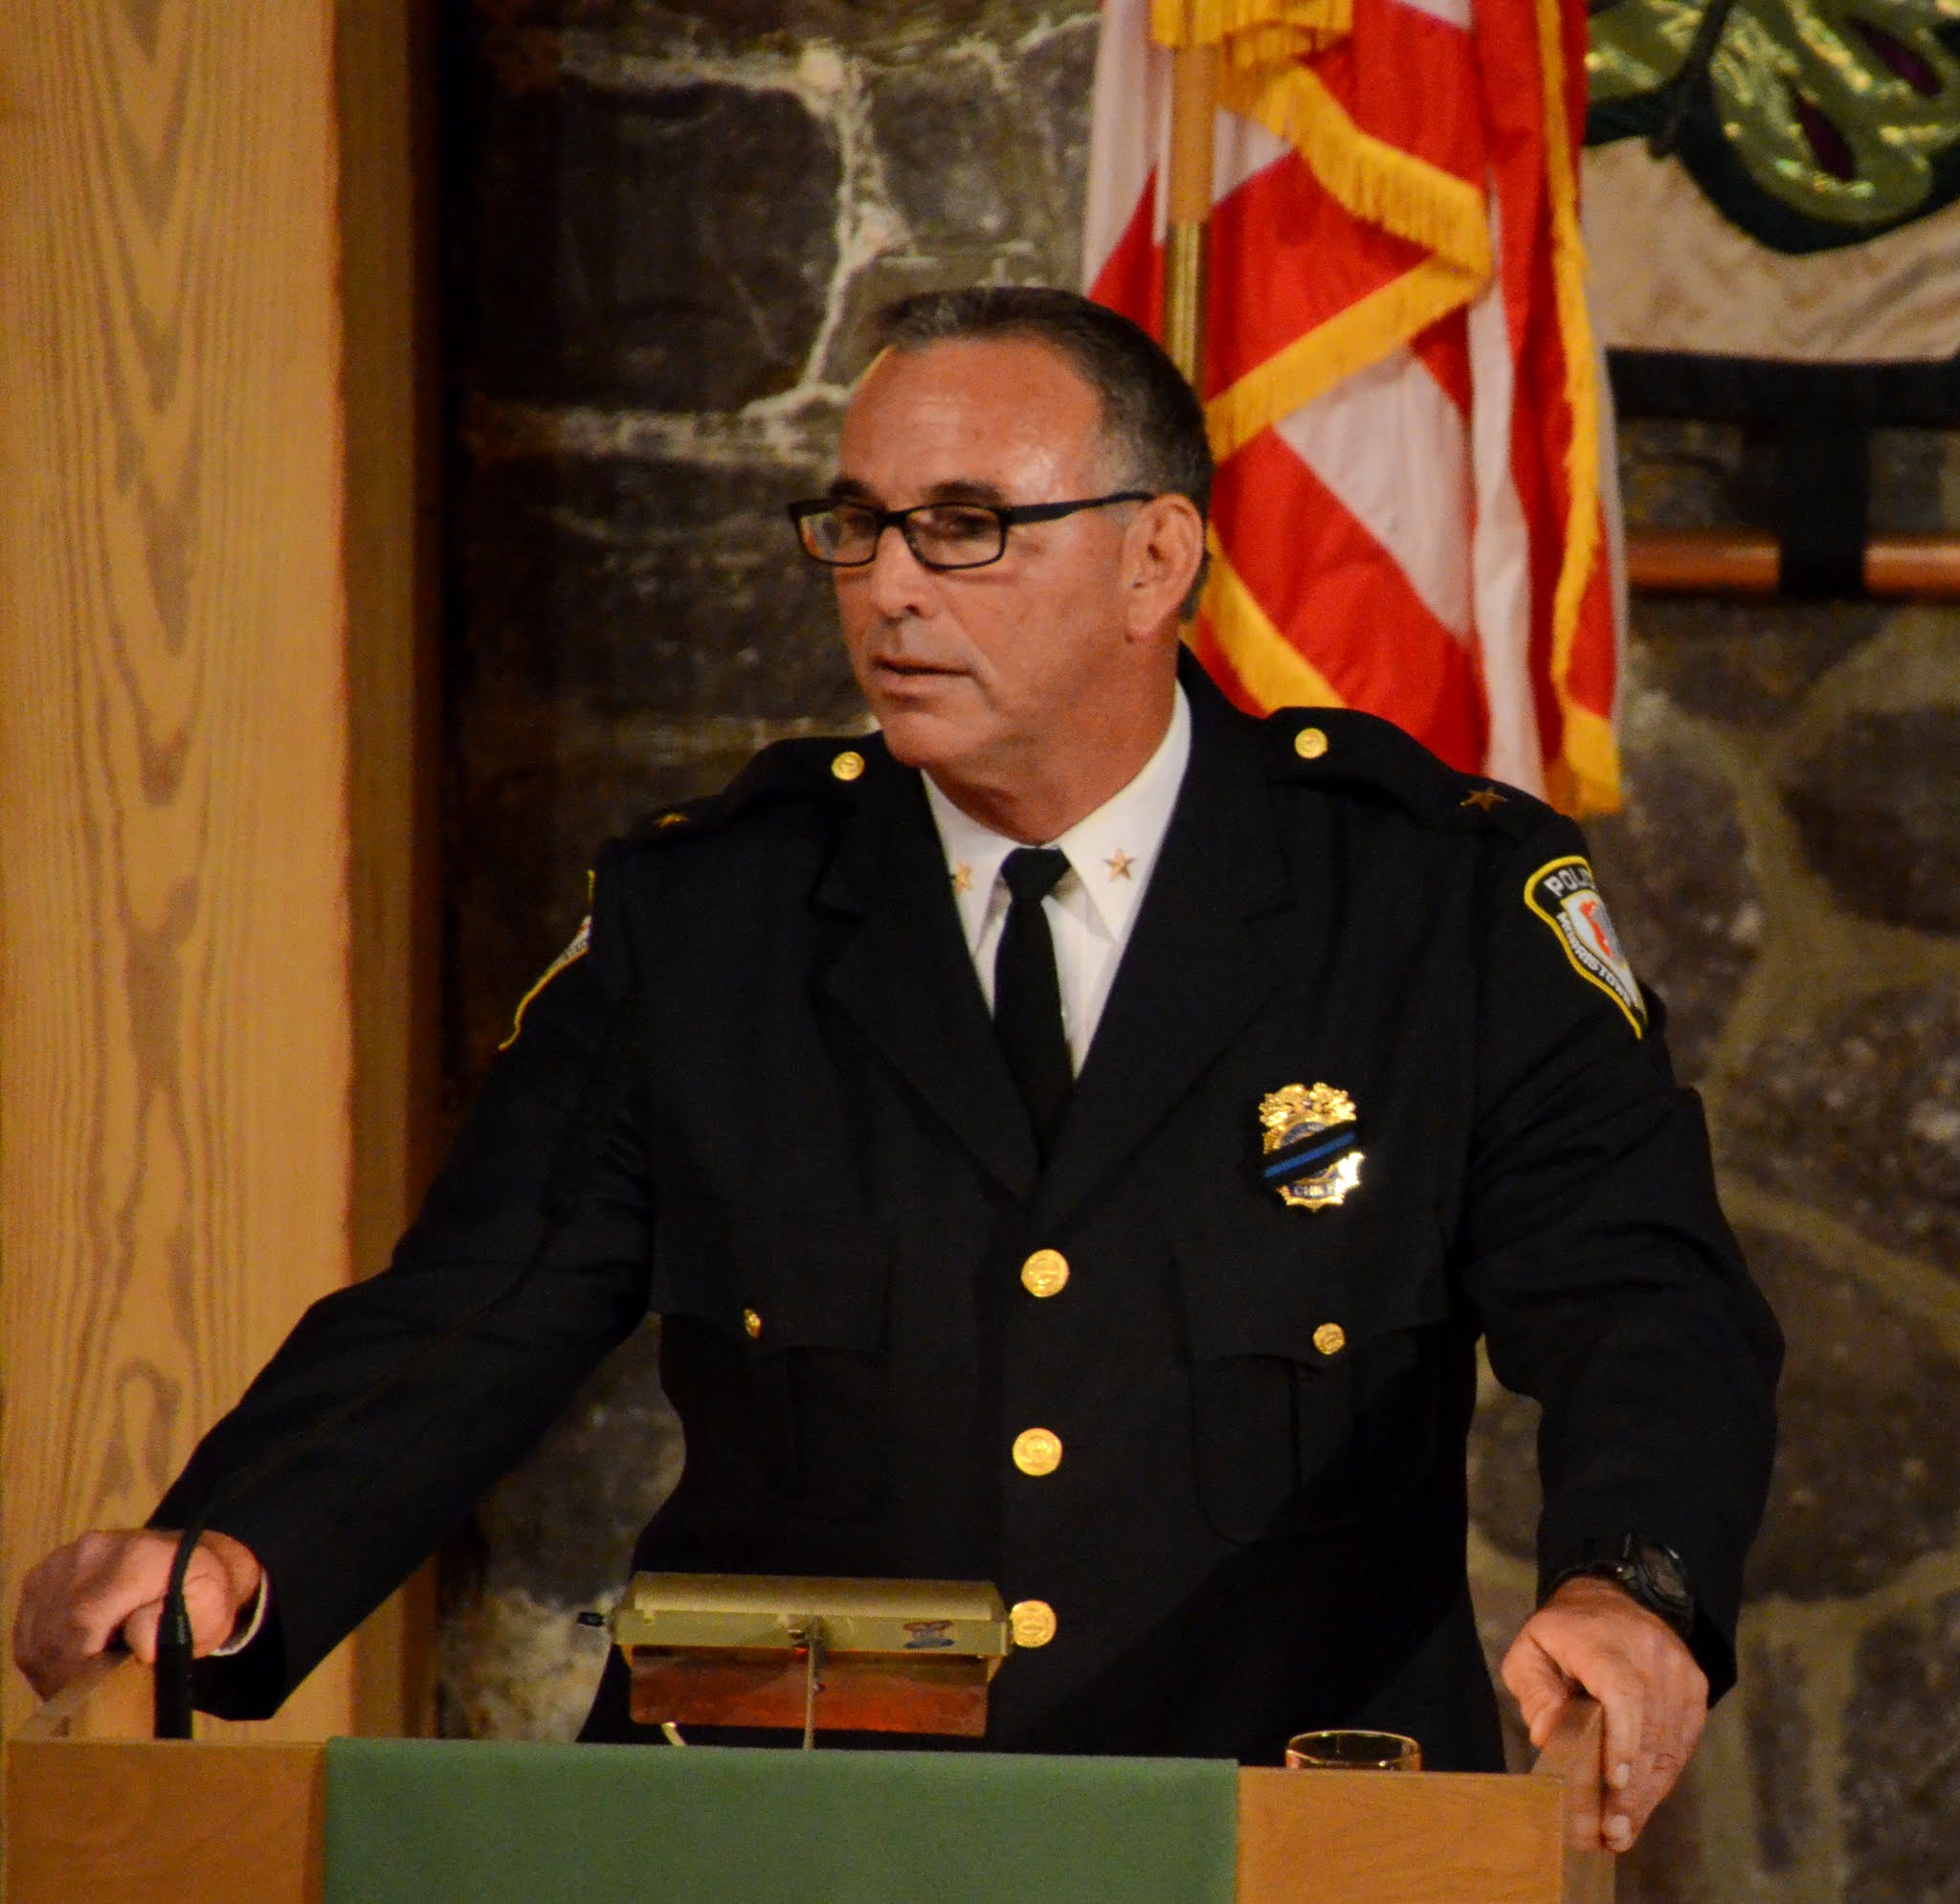 'STAND WITH ME' : Morristown Police Chief Pete Demnitz addresses interfaith vigil. Photo by Dave Sullivan